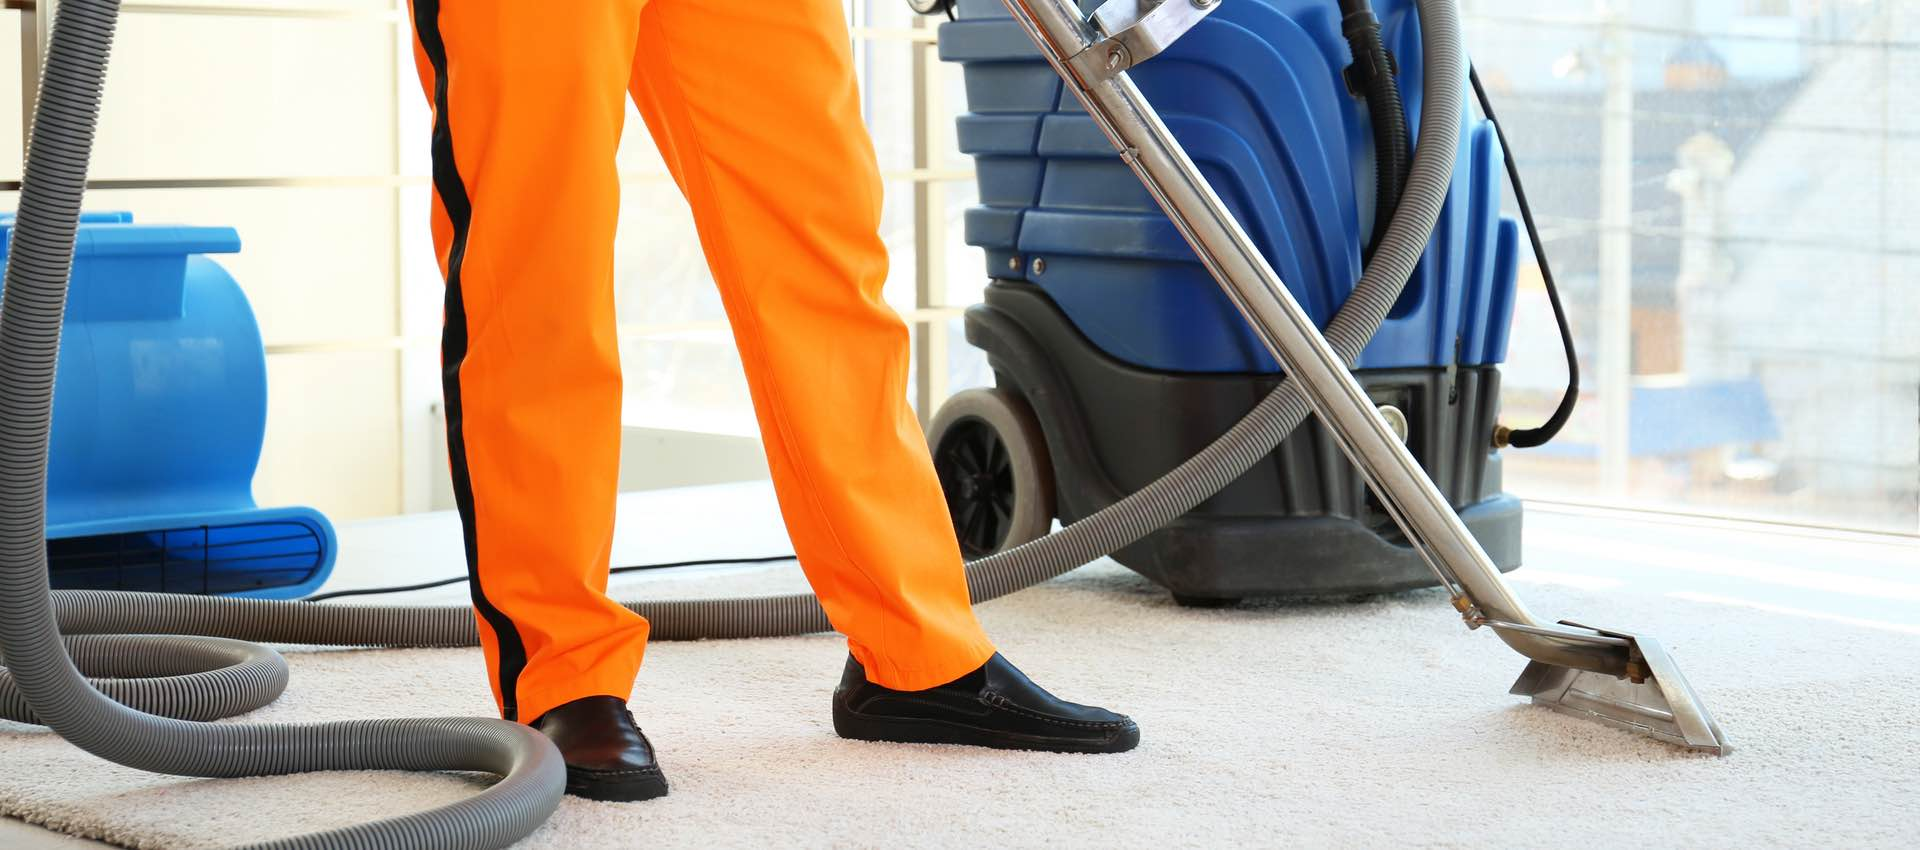 The Four Most Common Carpet Cleaning Methods